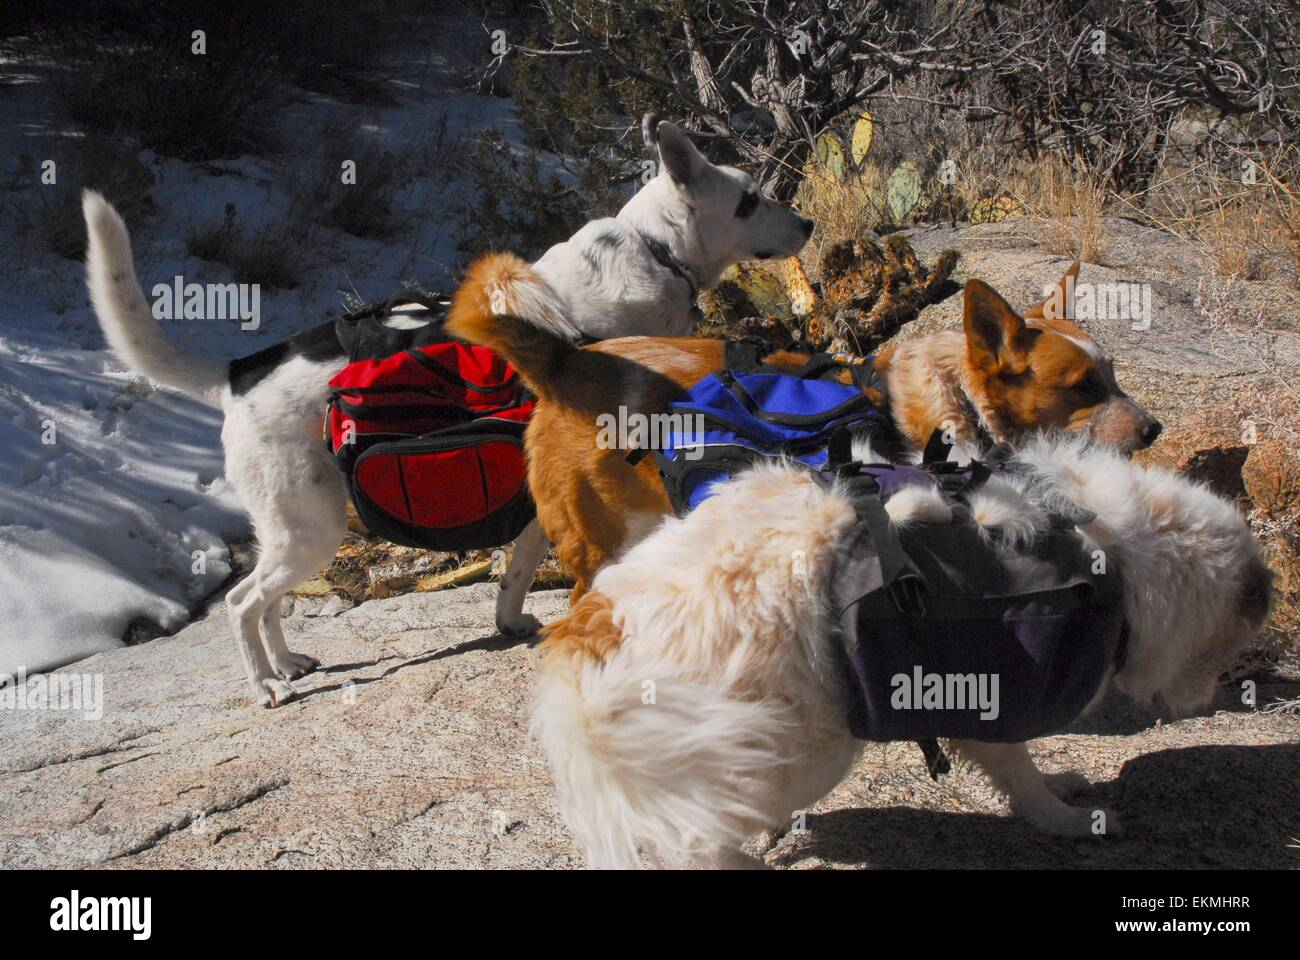 Three dogs carrying back packs while on a hike in the Sandia Mountains of New Mexico - USA - Stock Image